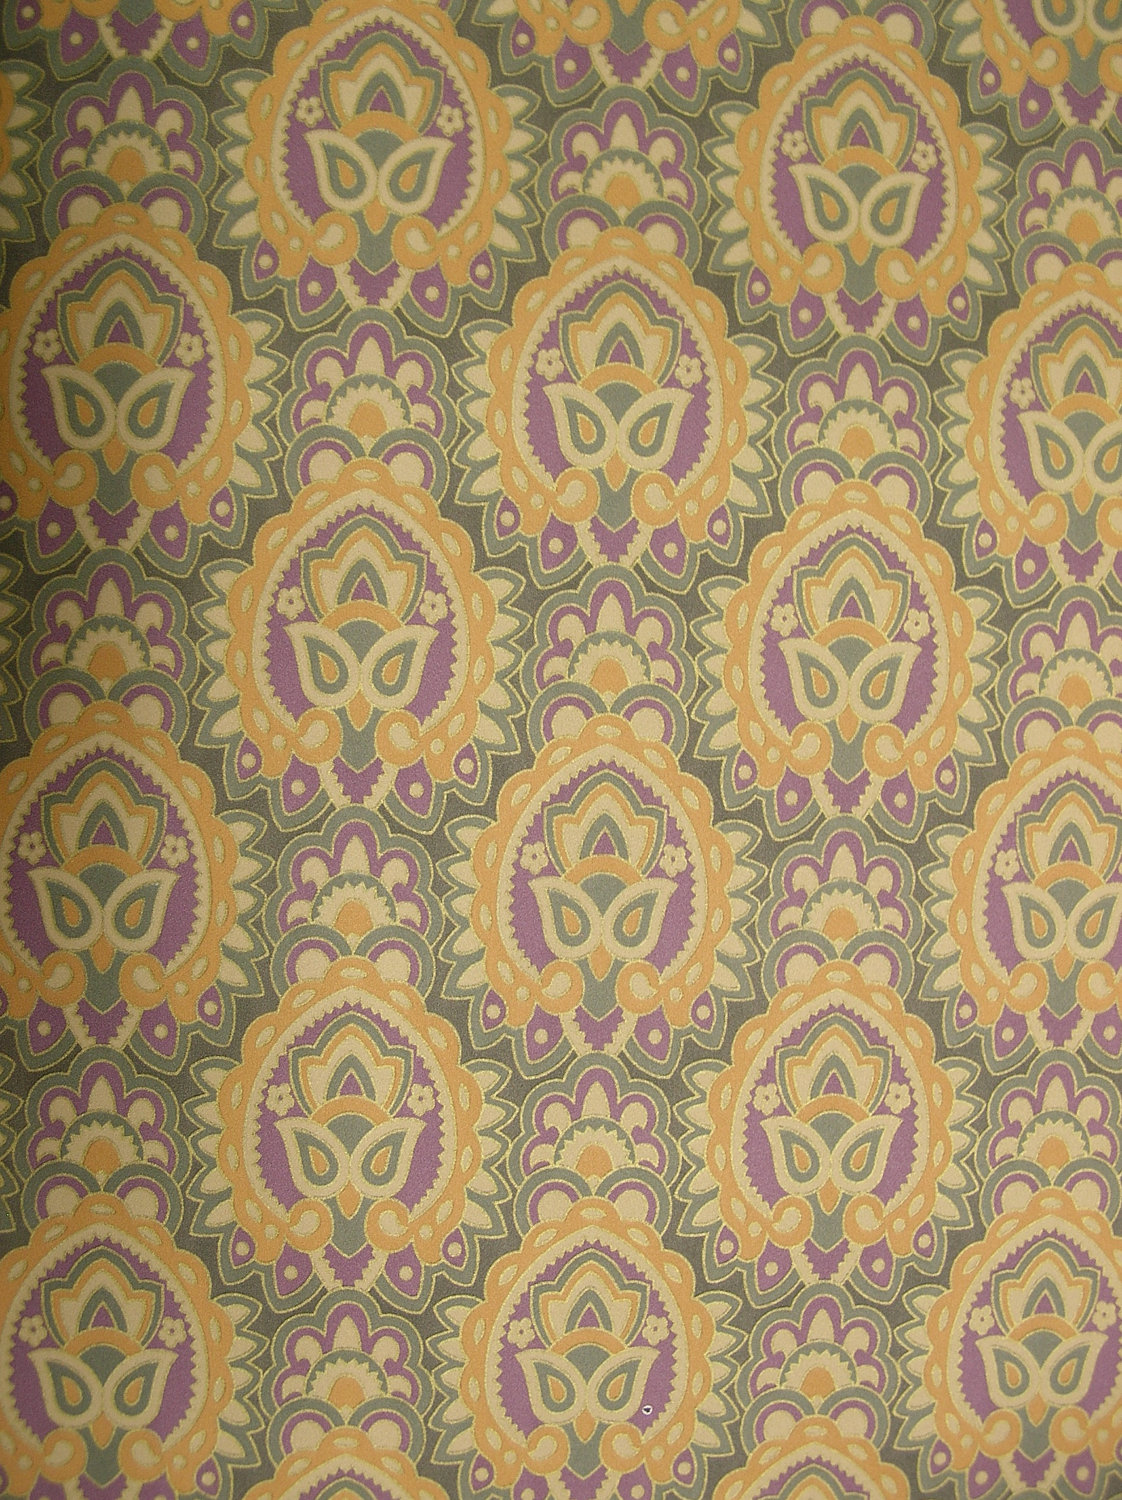 Wall Paper Boho Indian Mod Retro 1970s 70s Wallpaper Covering Roll 1122x1500